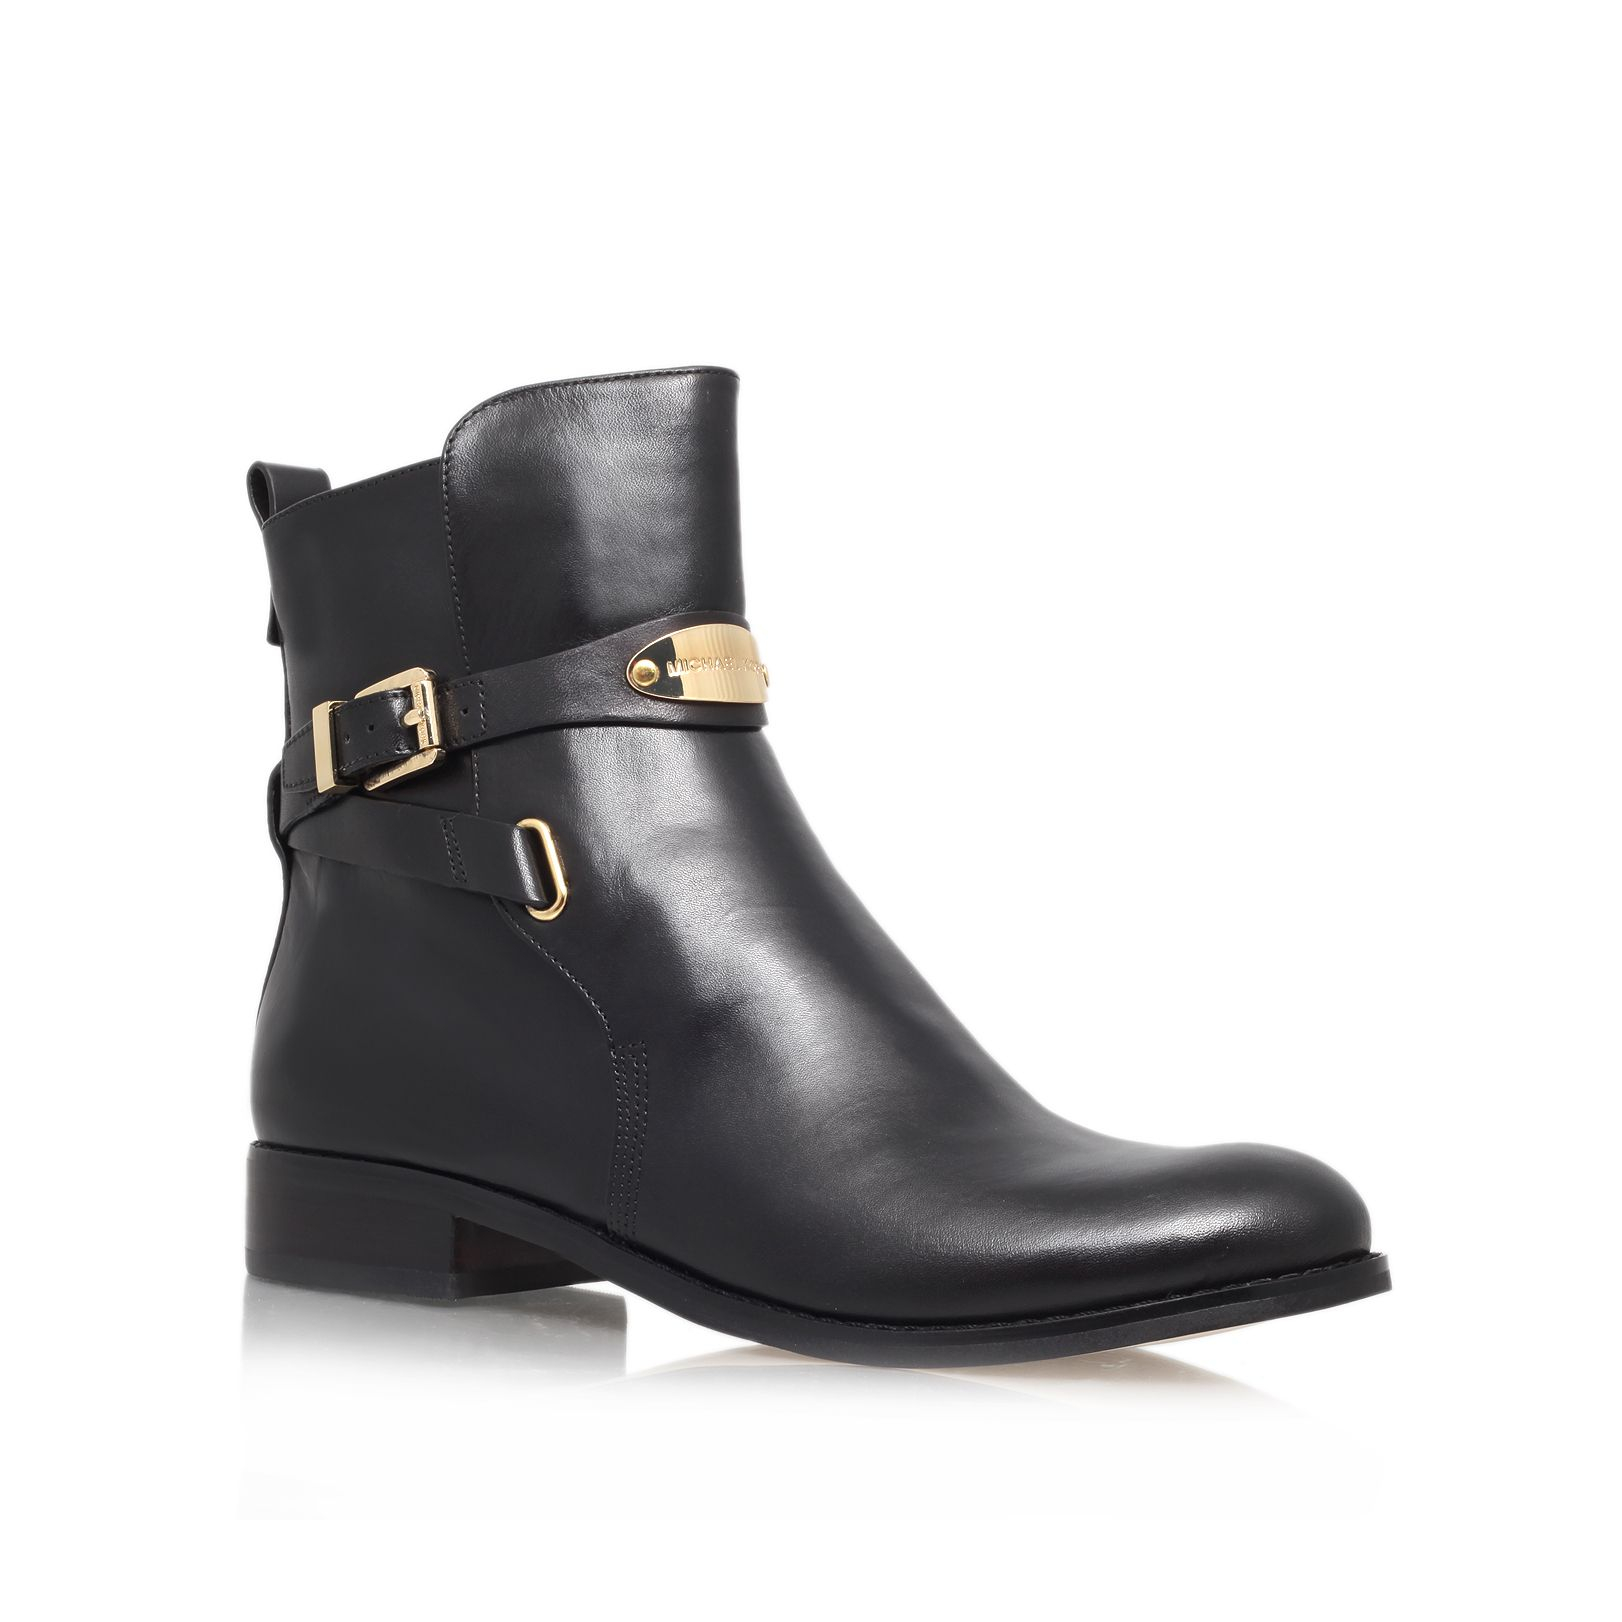 michael kors arley leather ankle boots in black lyst